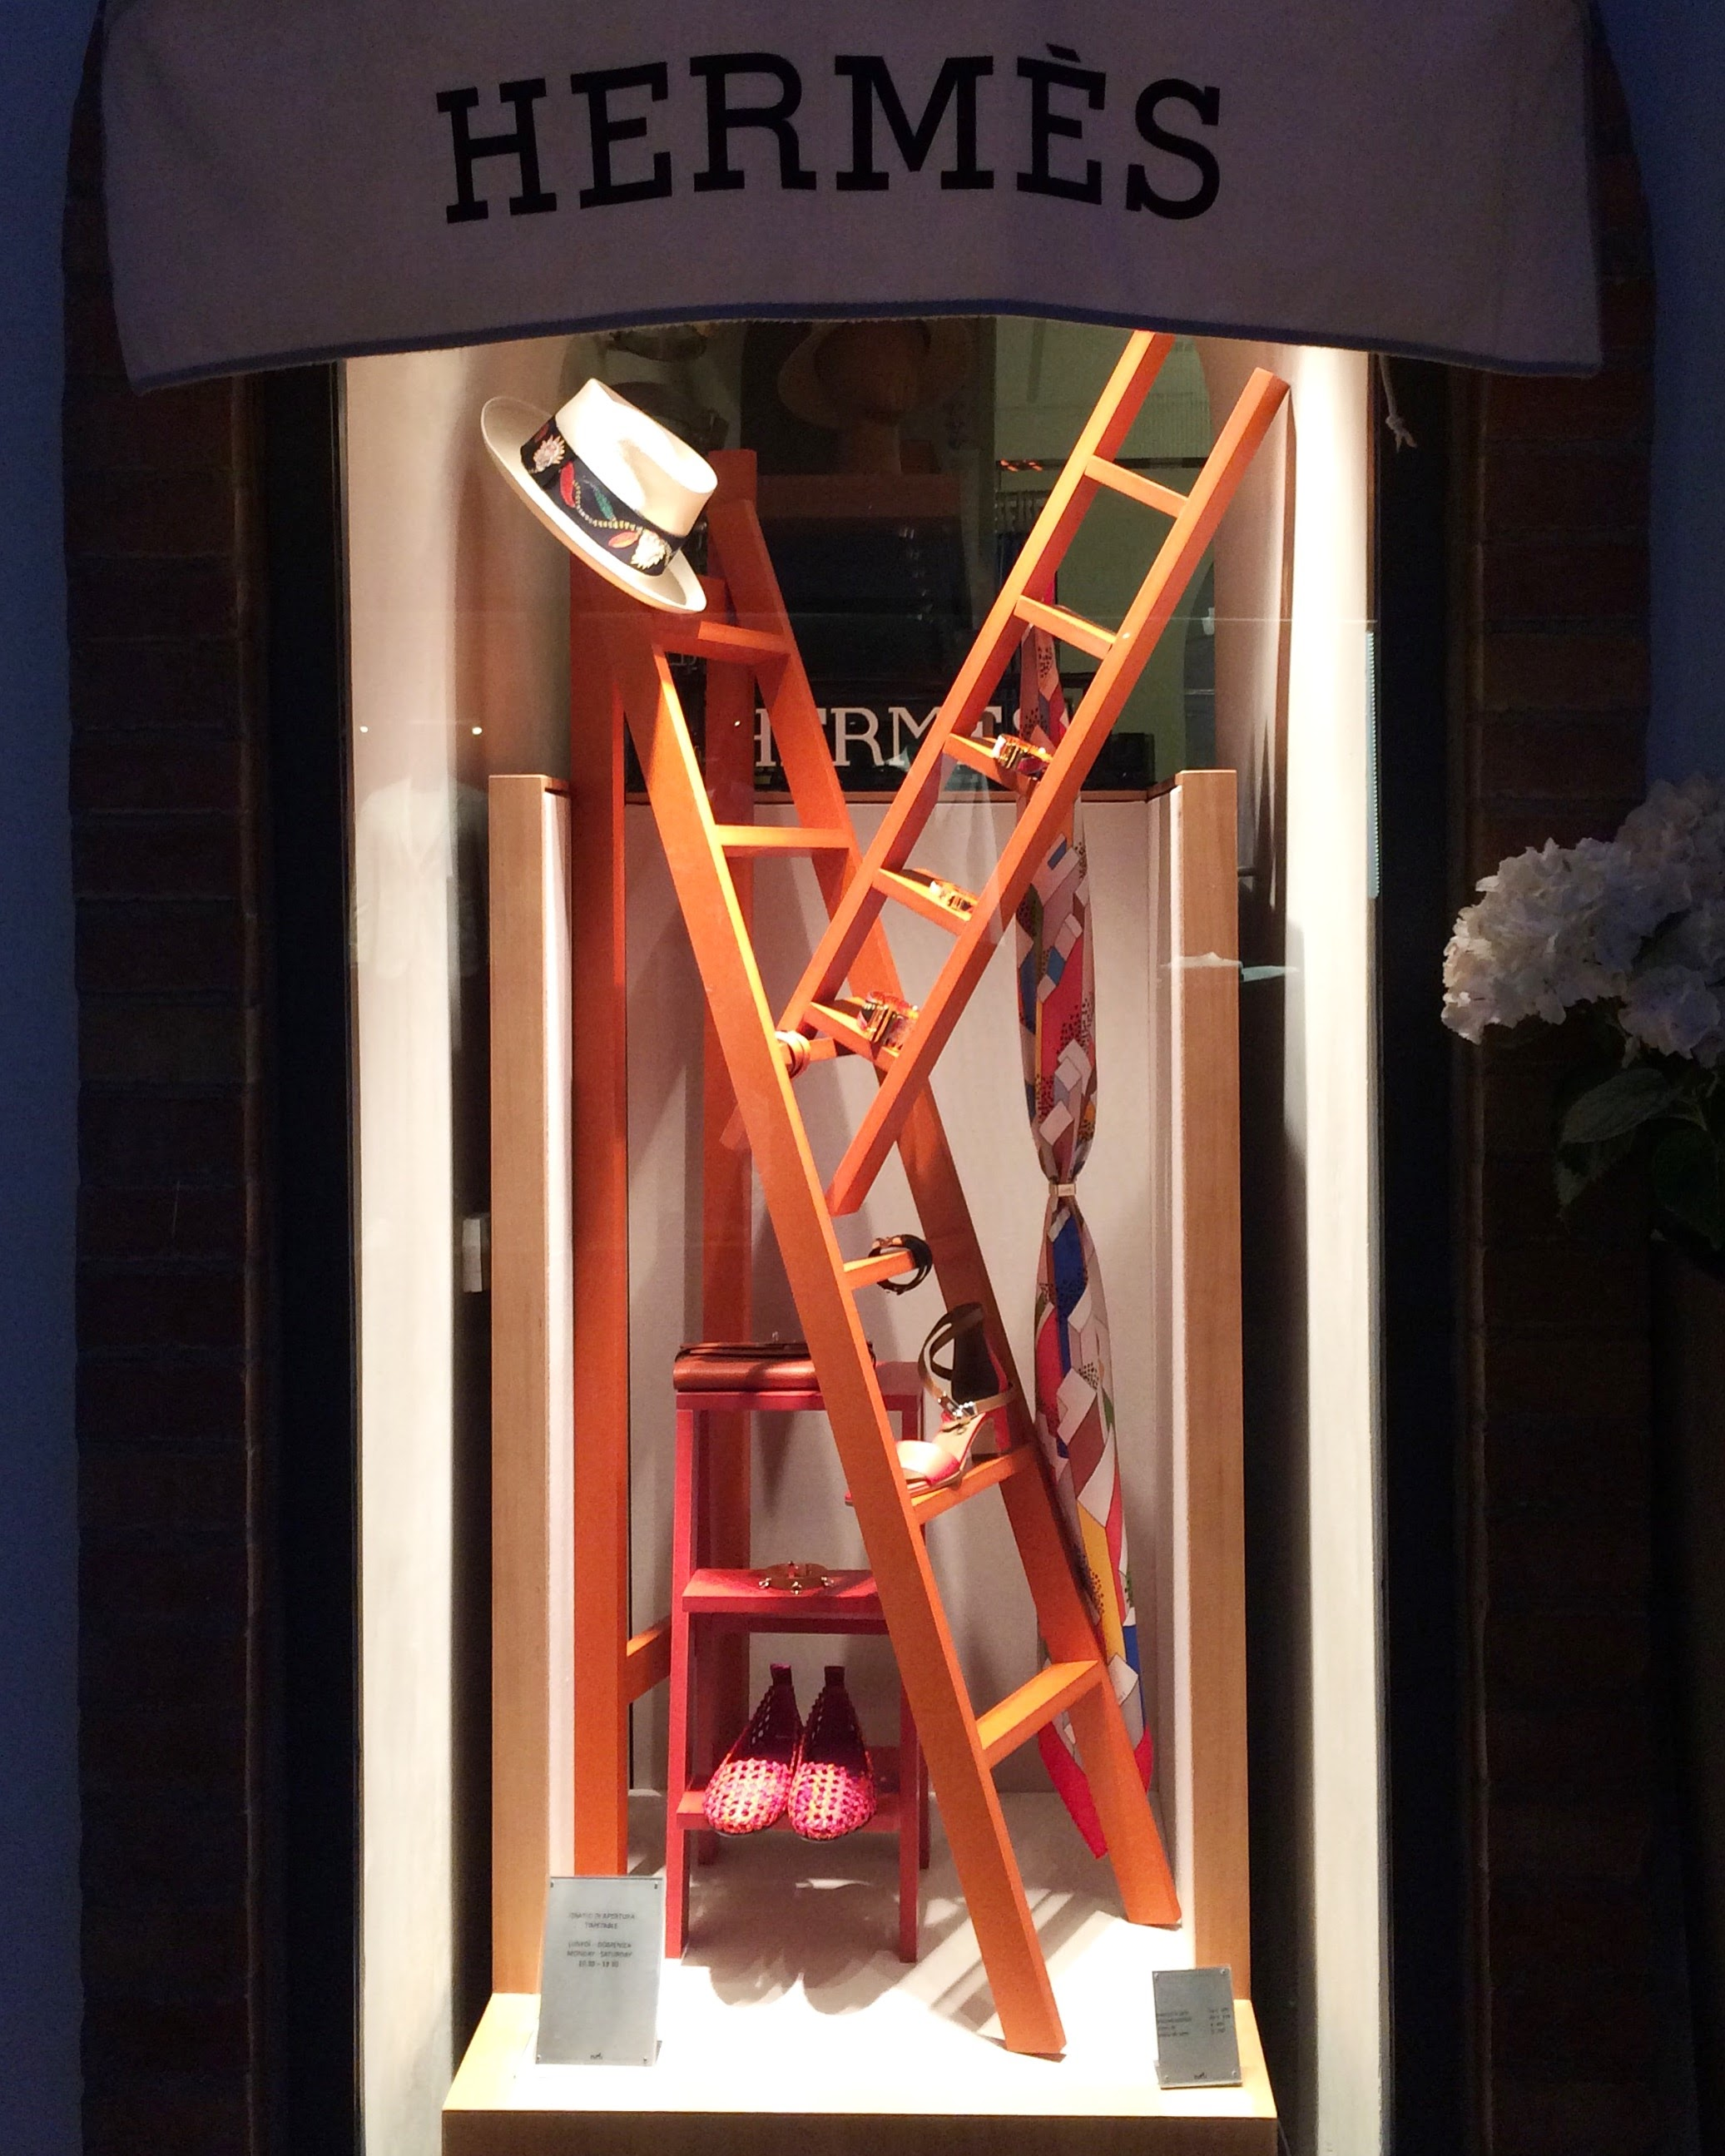 Hermés window shop, Capri - Photo: Vibes